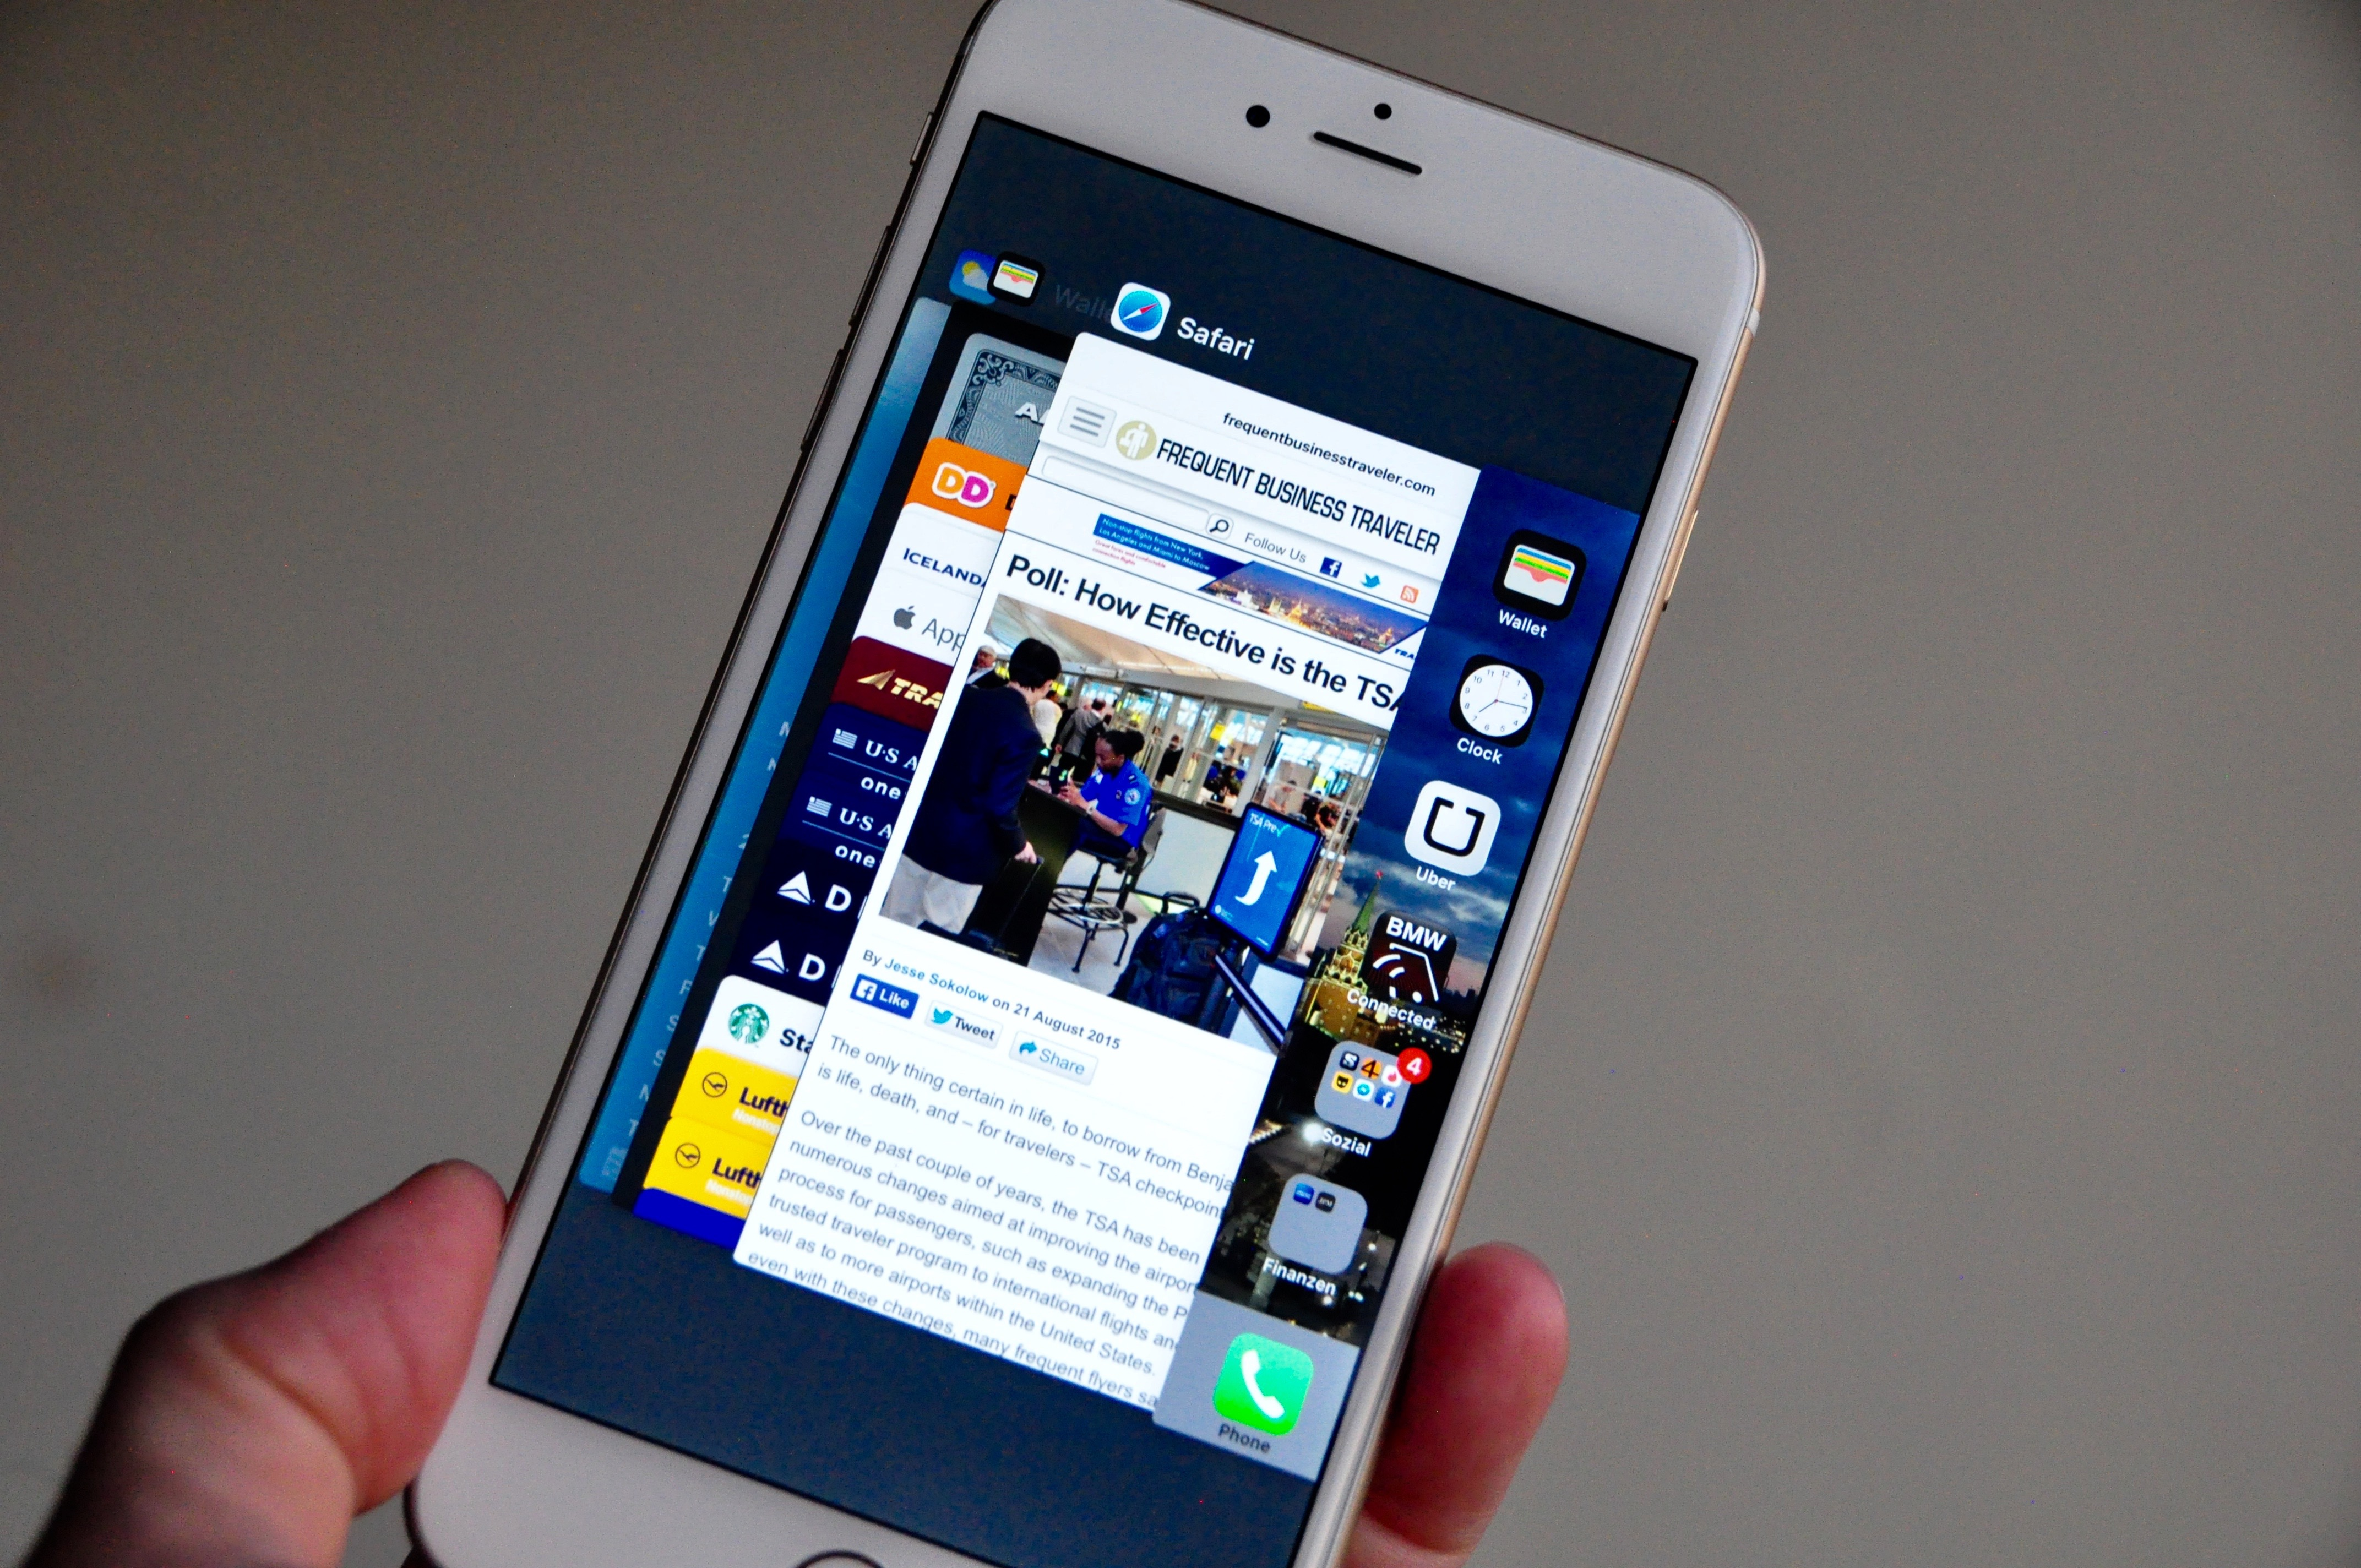 Apple's new iOS 9 multitasking feature uses a stacked deck of apps that one swipes through